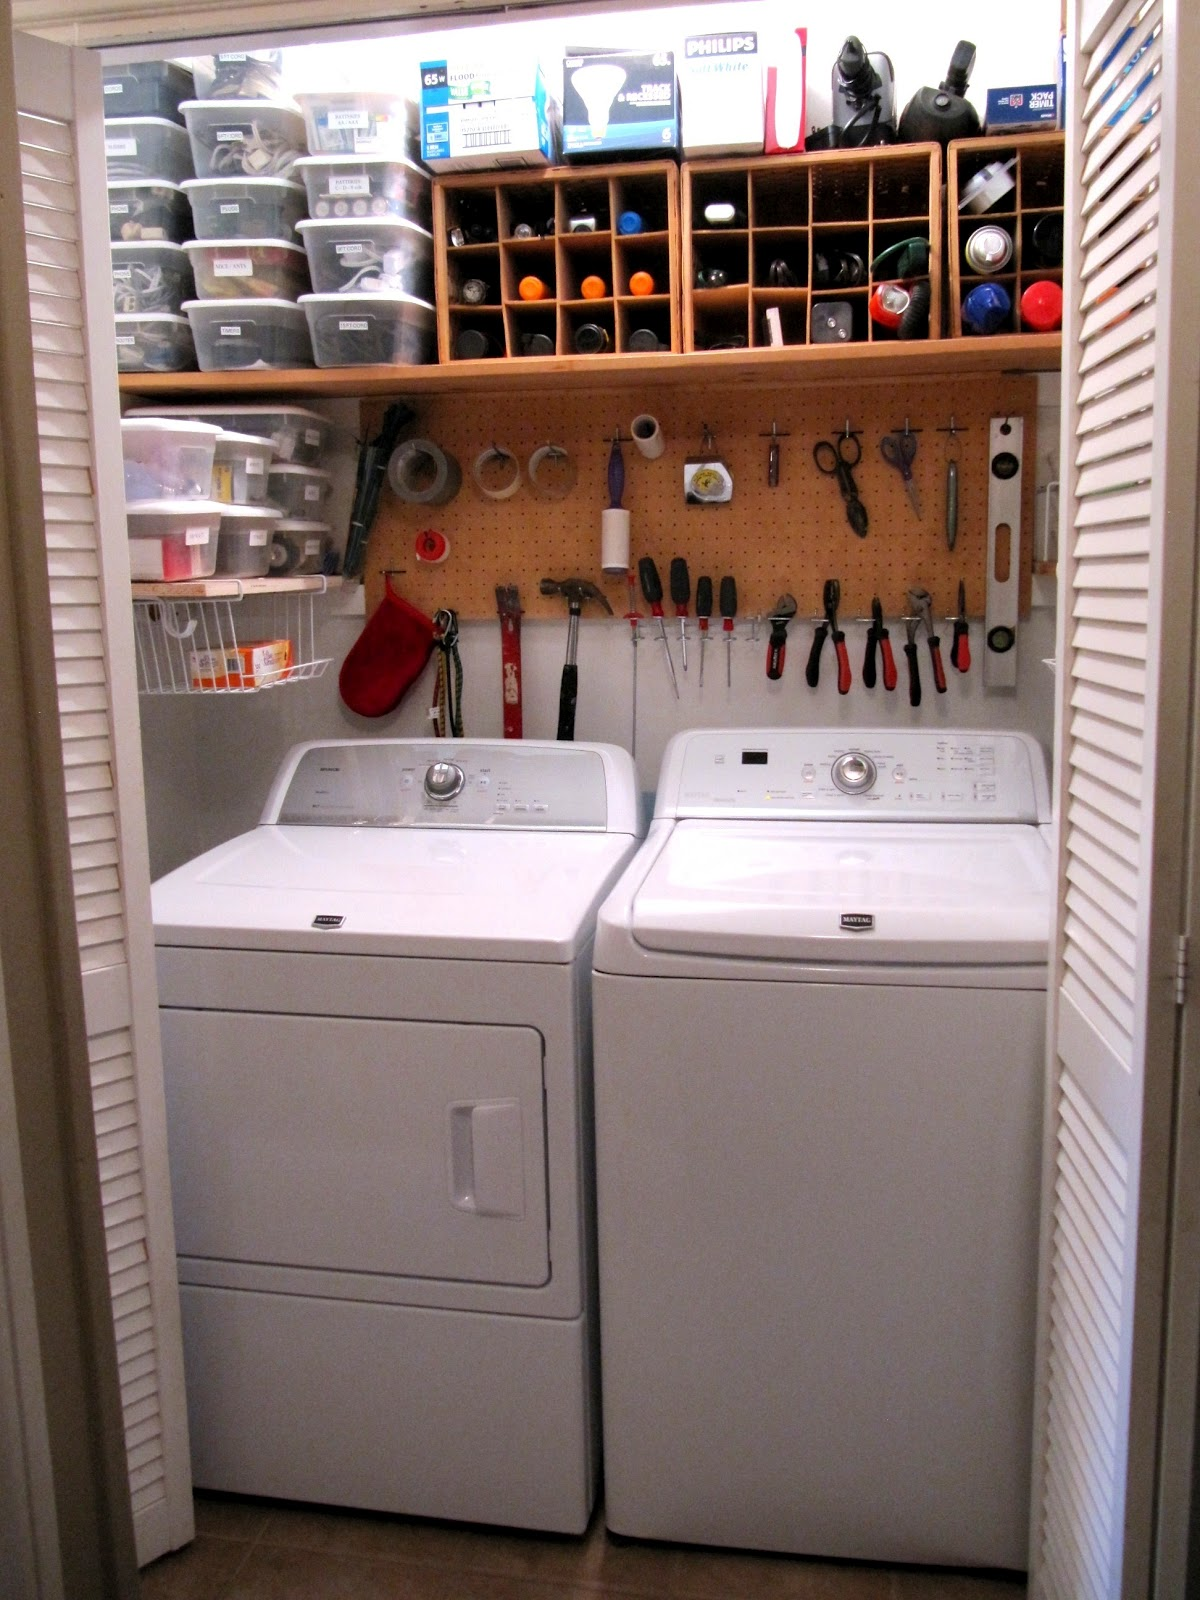 Sew Many Ways Laundry Room Not Big Not Pretty Not A Room But Organaized